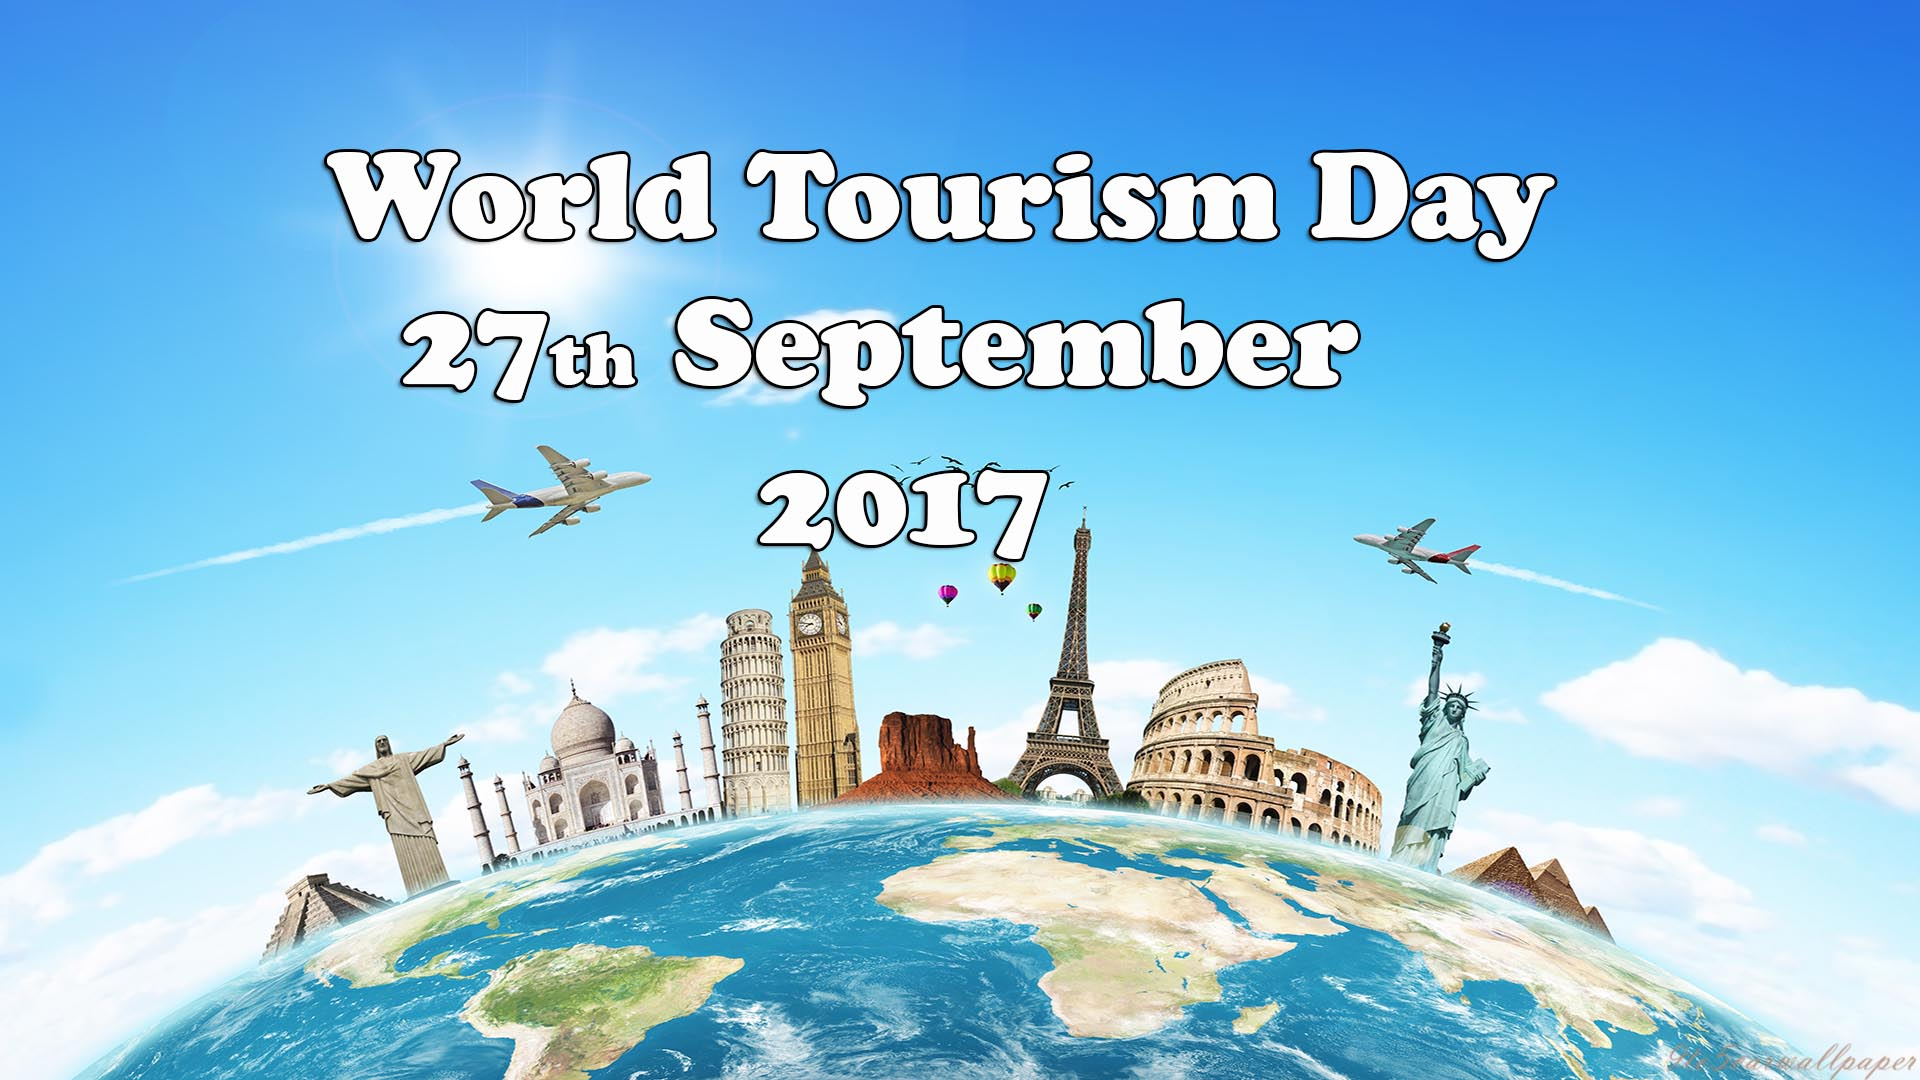 world-tourism-day-hd-wallpapers-posters-images-2017